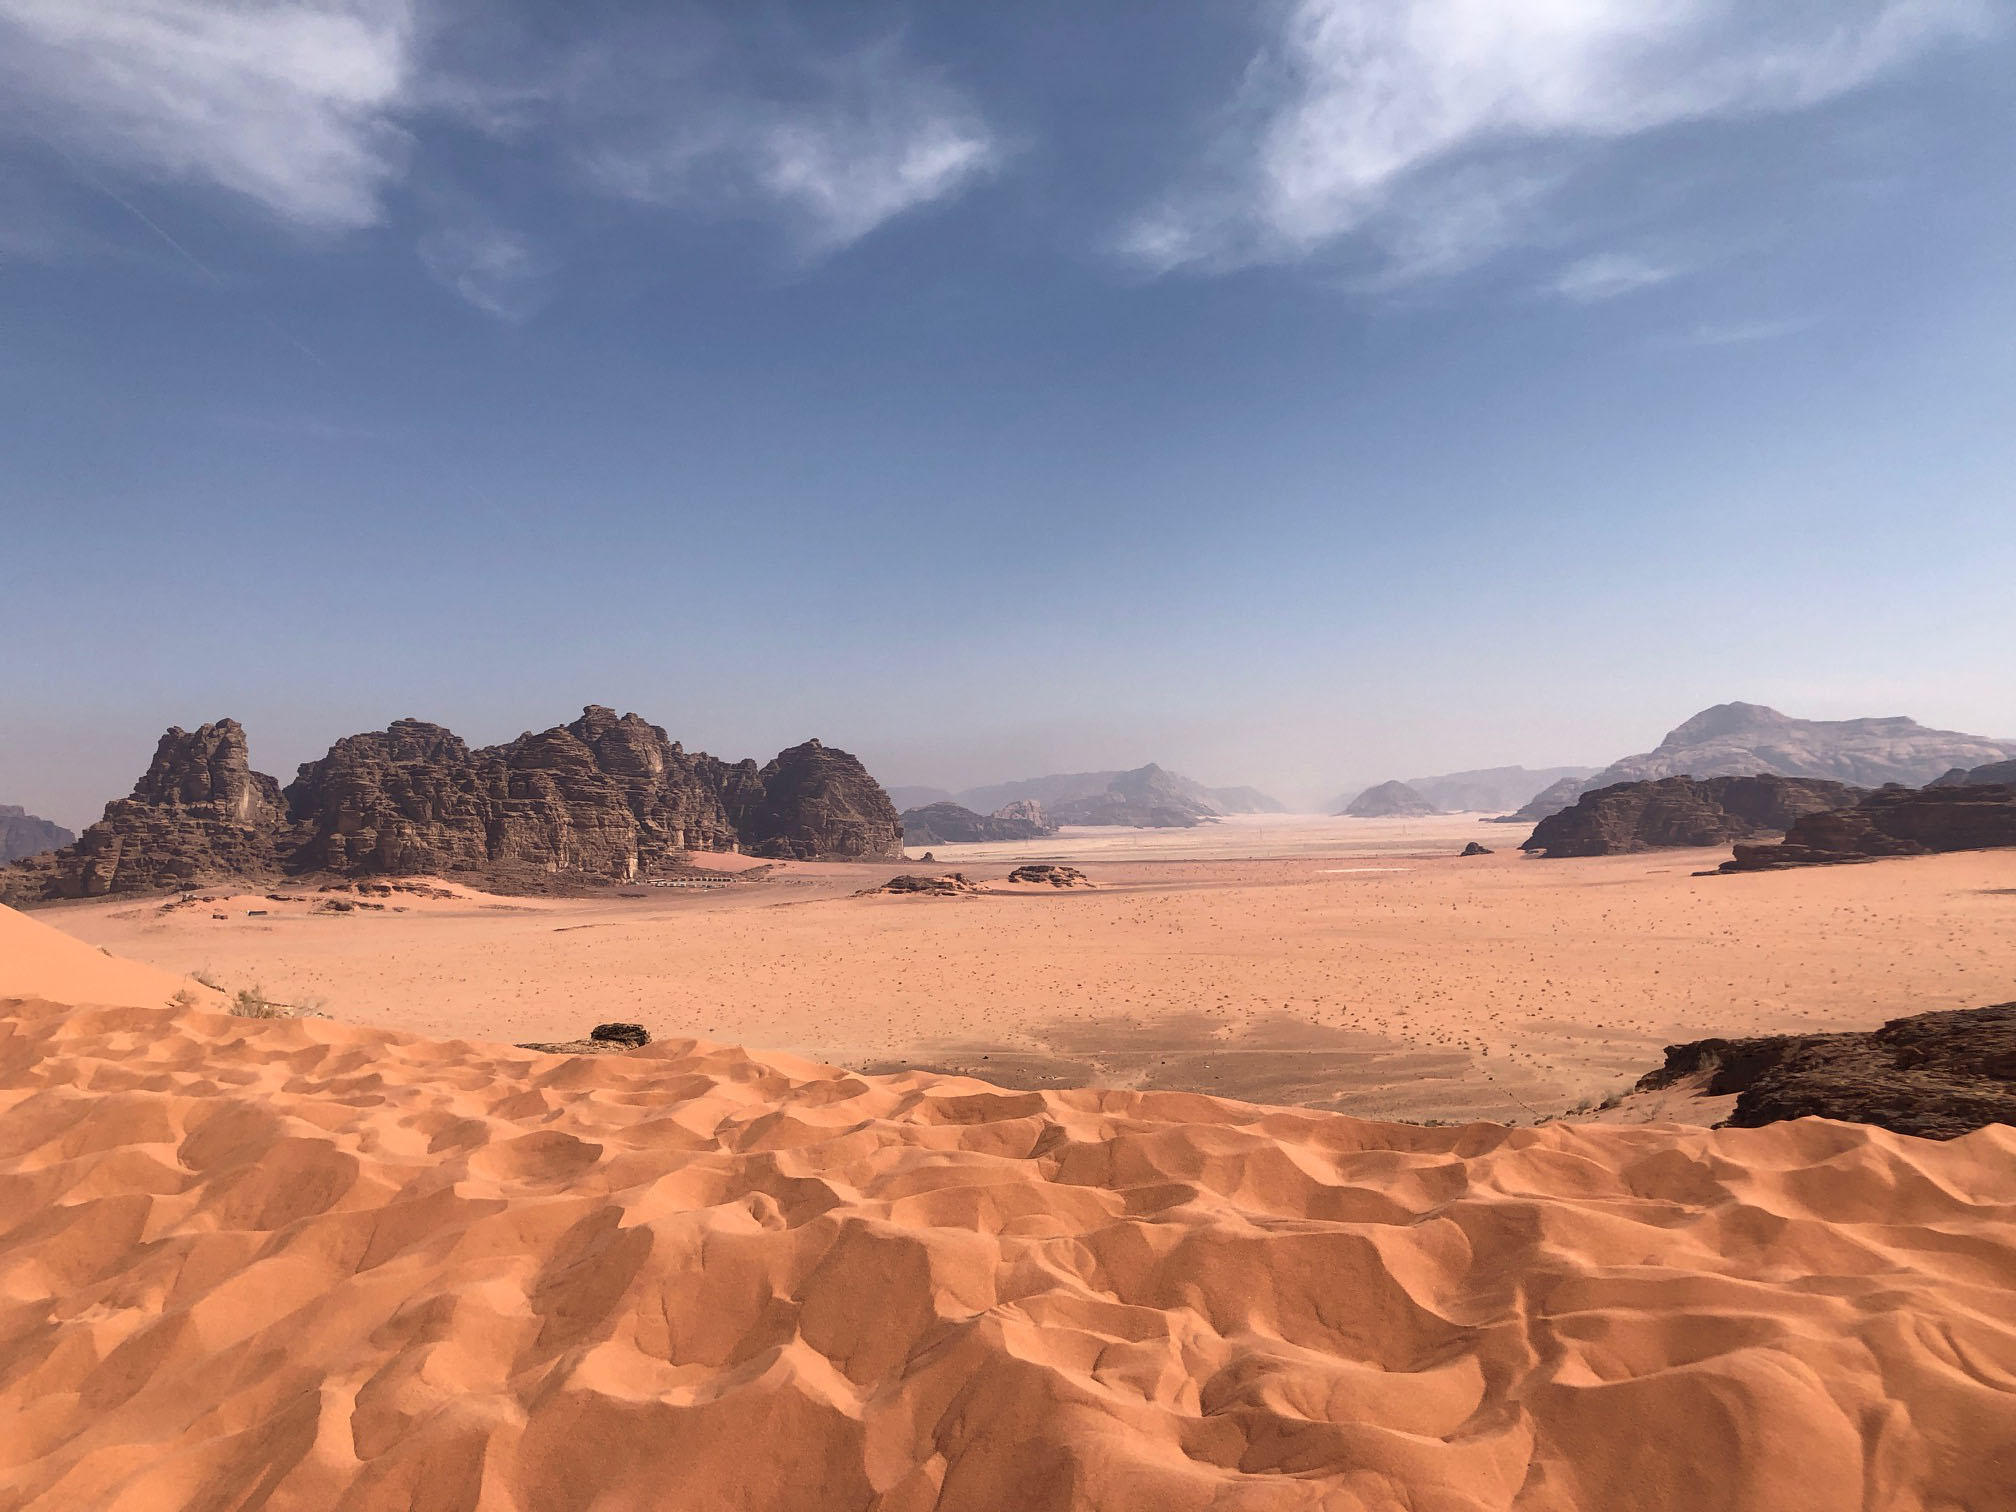 We also spent a night in Wadi Rum and got to see where the movie  The Martian  was filmed. Photo credit: Arguin, 2019